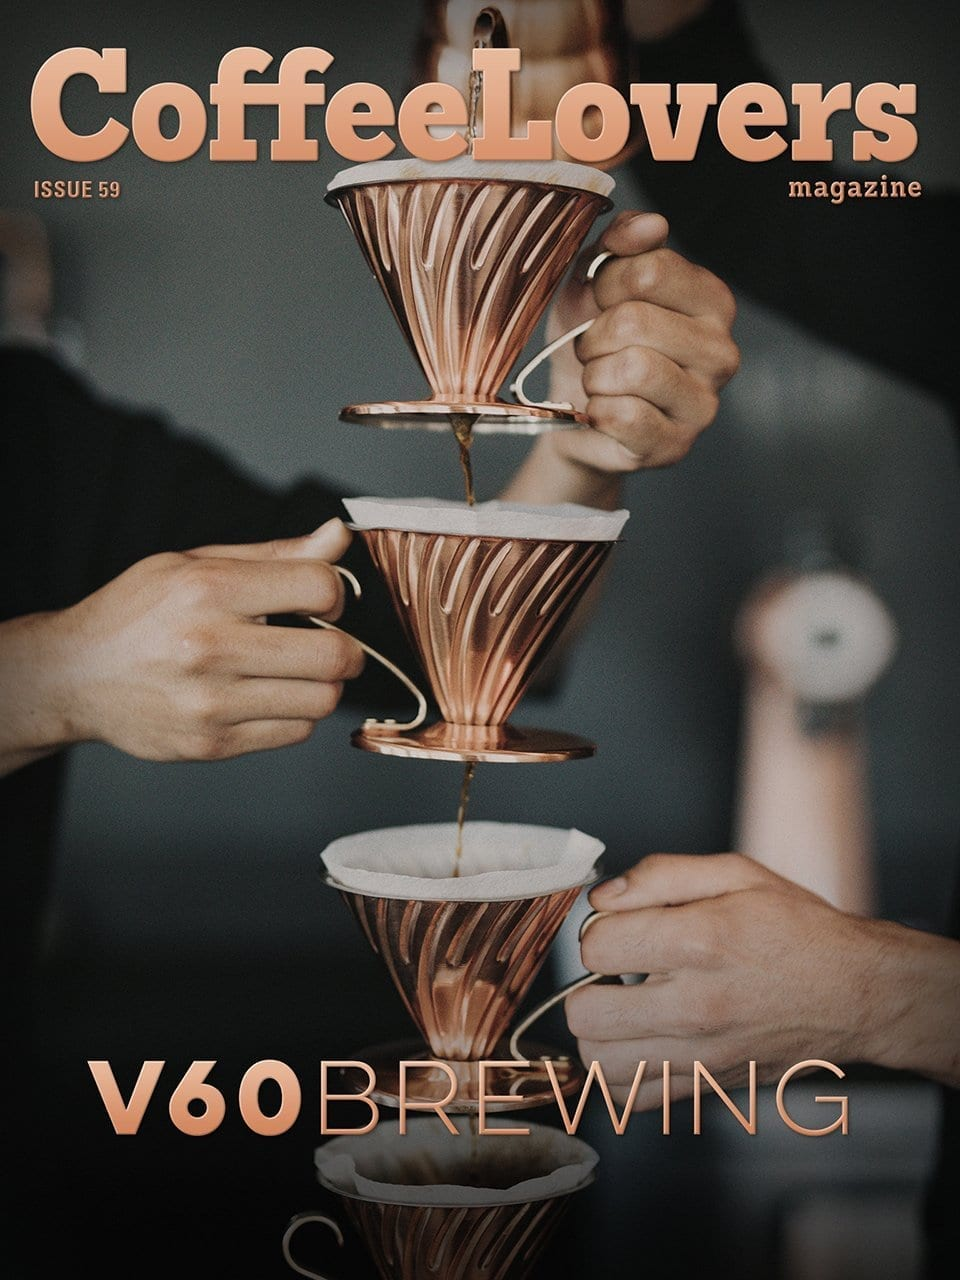 Brewing On the V60 – Issue 59